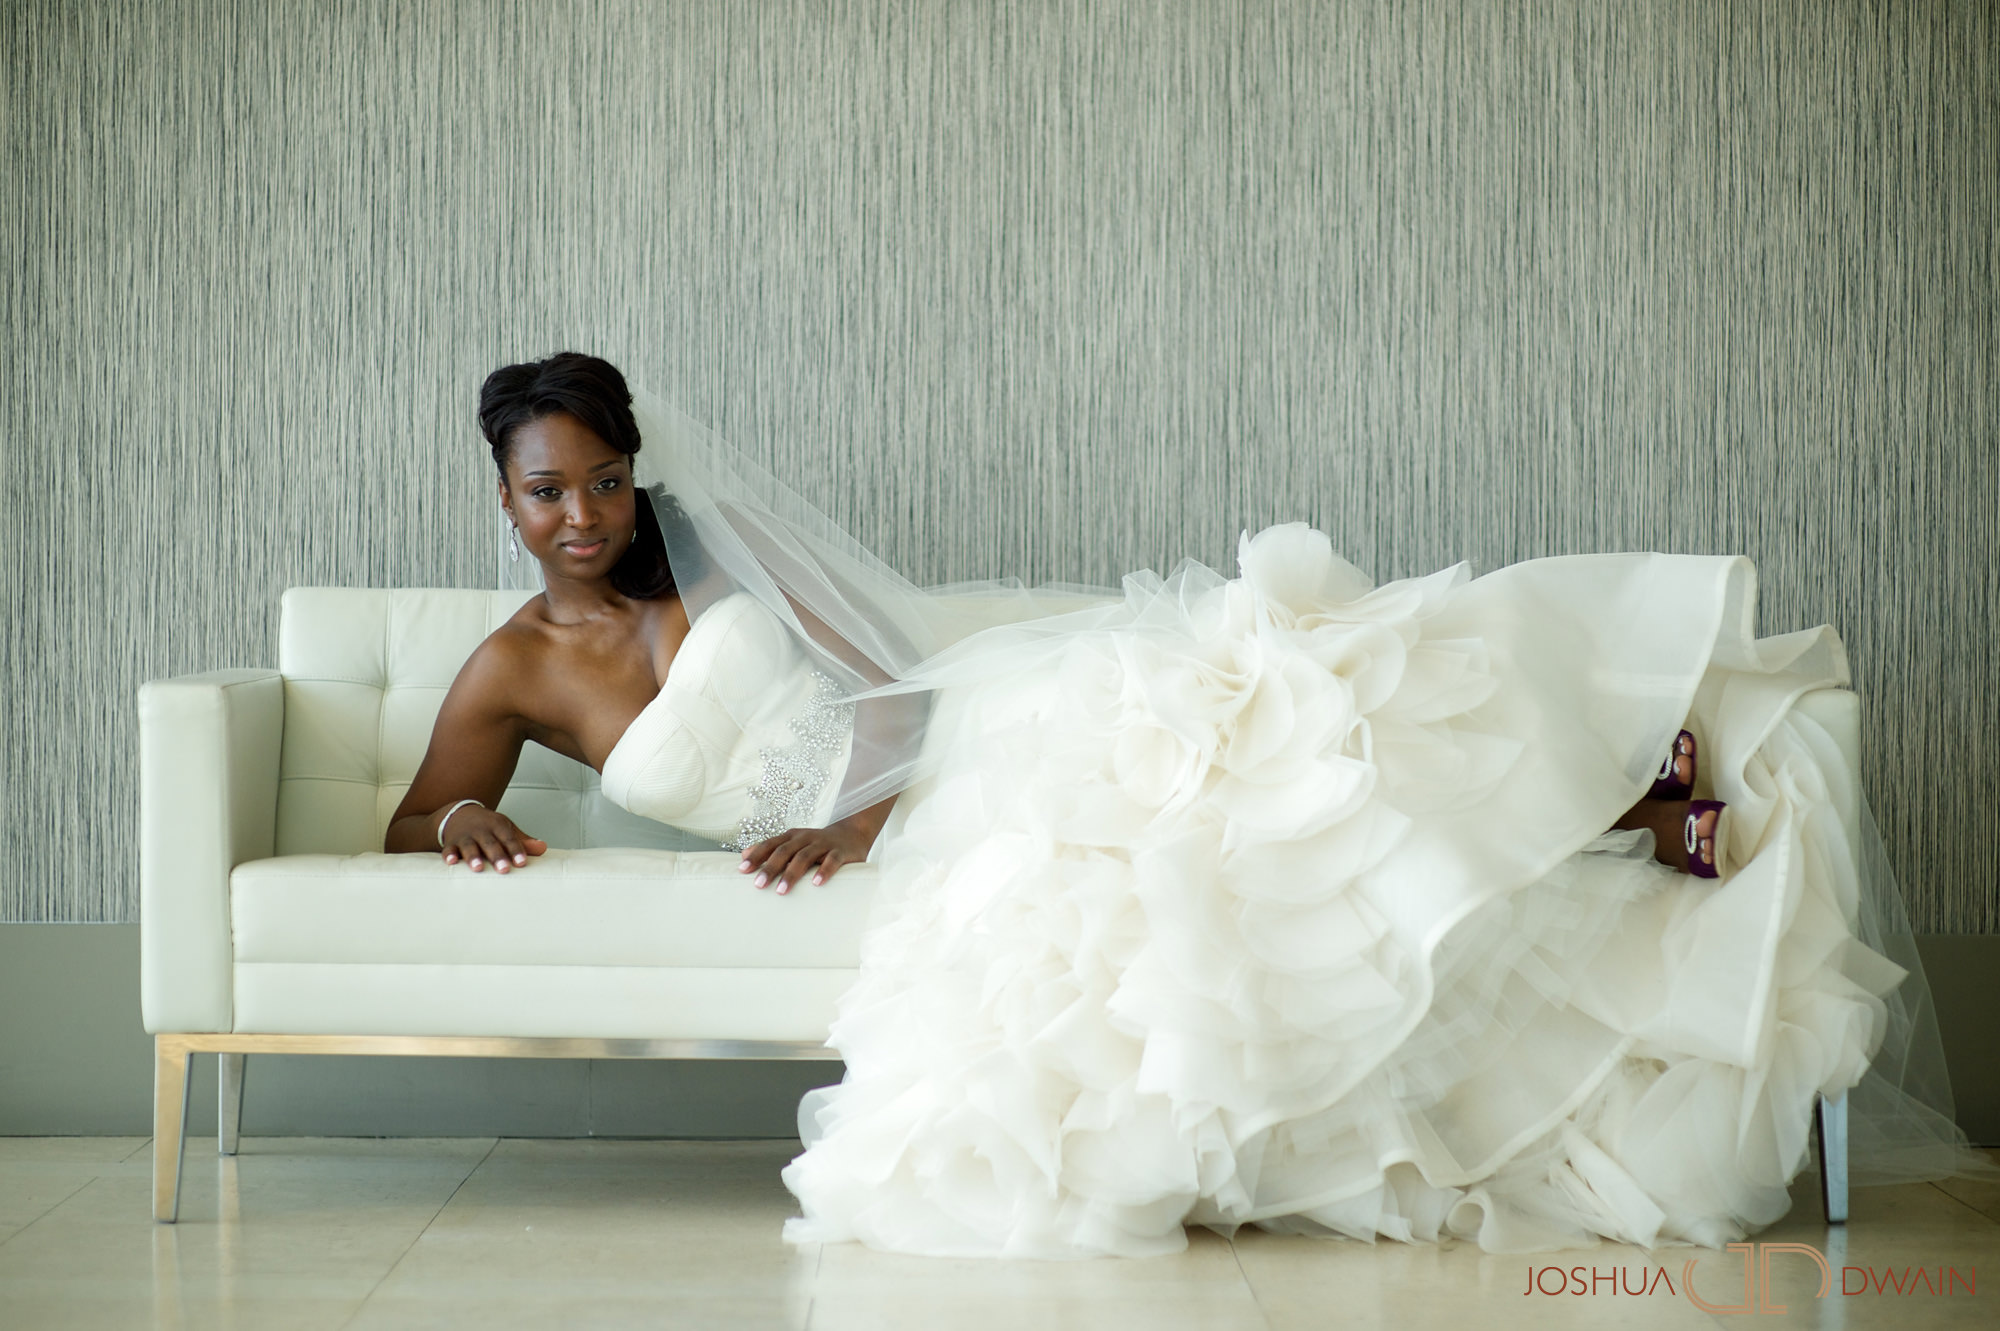 tasha-marcus-011-one-atlantic-atlantic-city-nj-wedding-photographer-joshua-dwain-tasha-marcus-018-one-atlantic-atlantic-city-nj-wedding-photographer-joshua-dwain-2012-05-27_tm_285